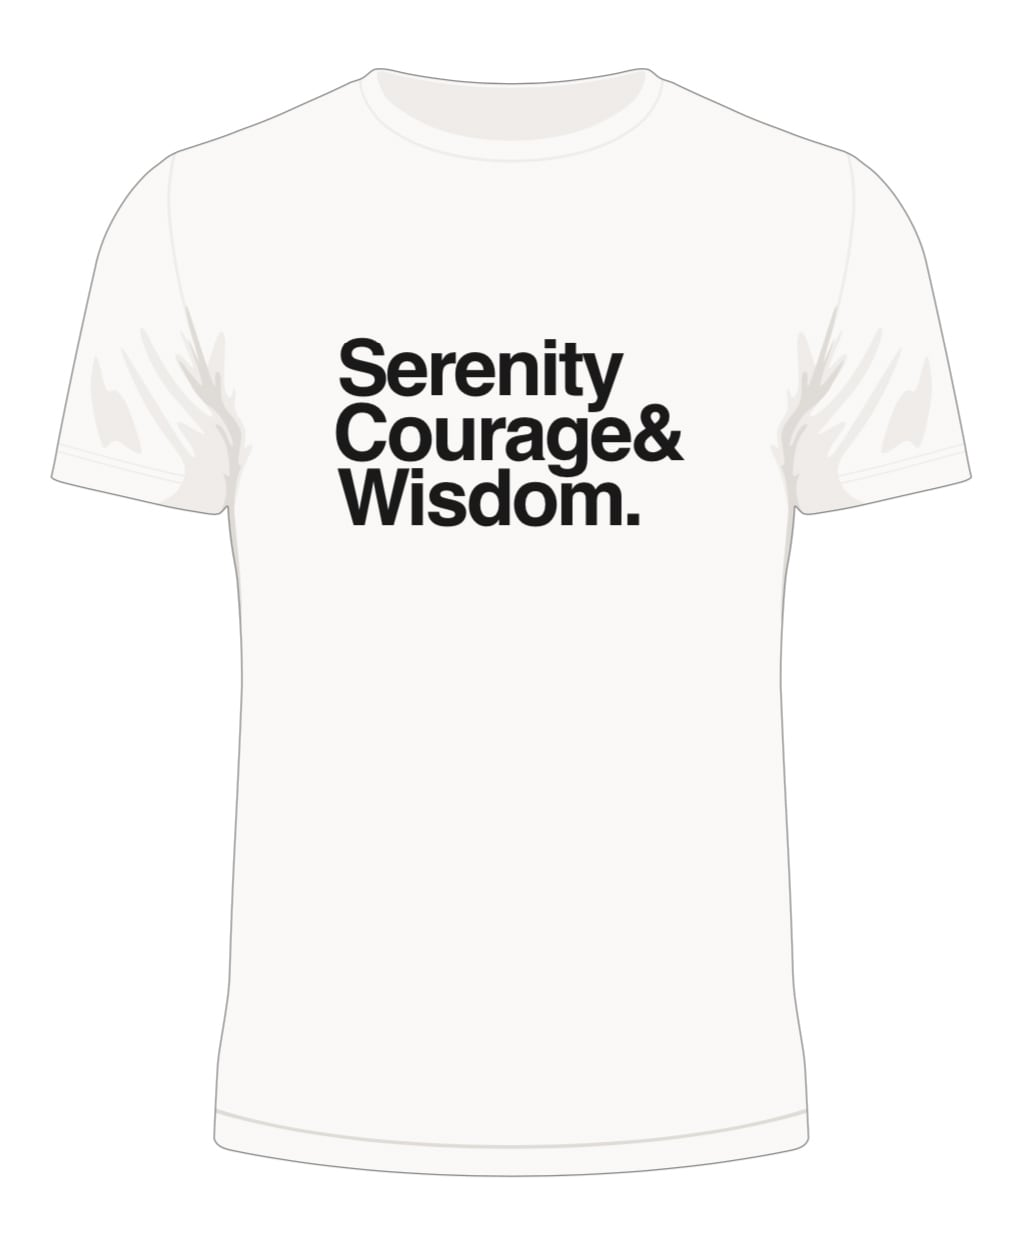 Serenity, Courage & Wisdom T-Shirt